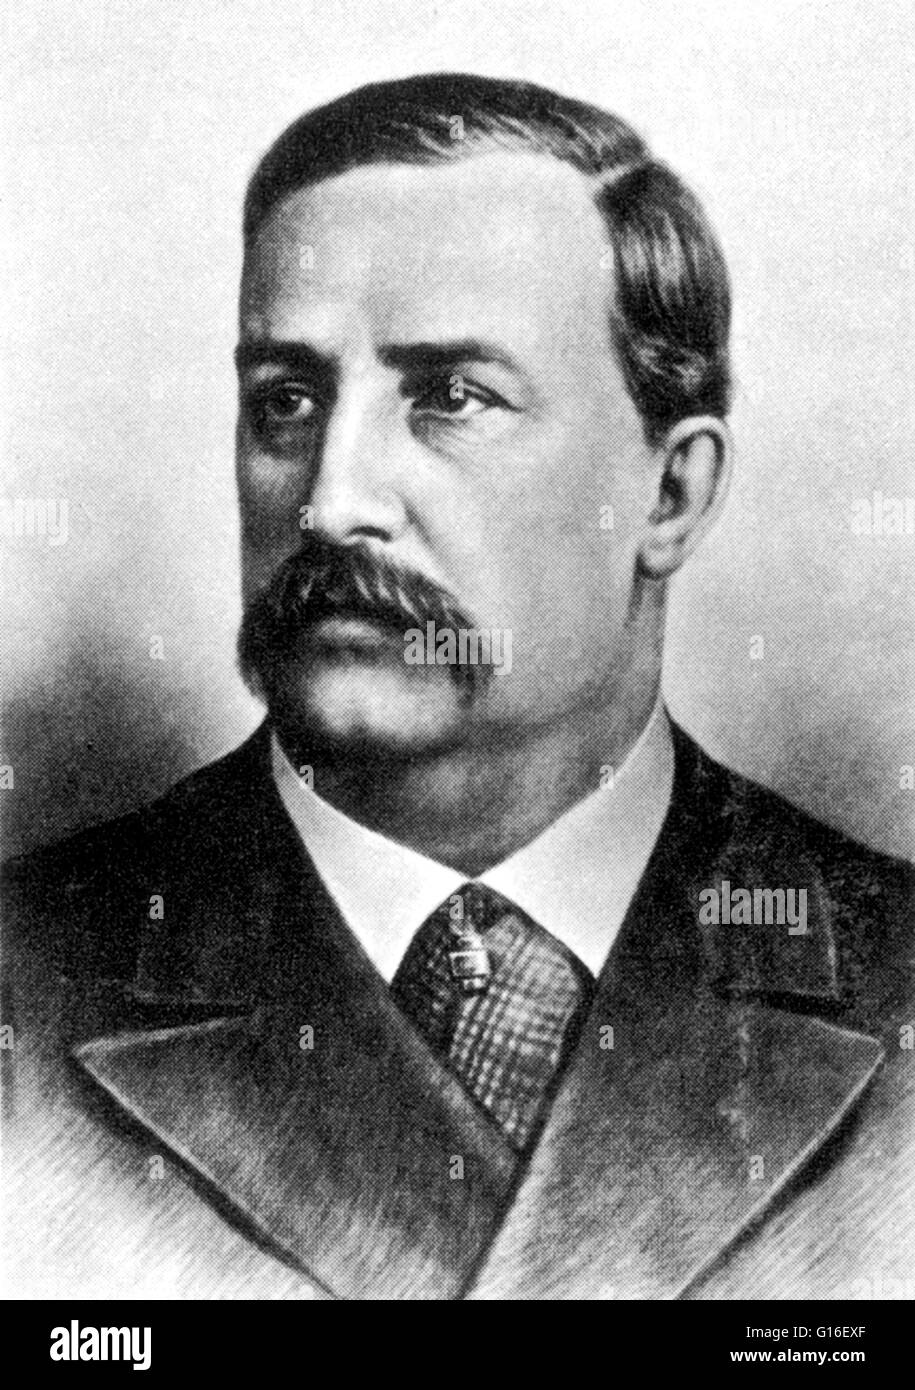 Alexander Porfiryevich Borodin (November 12, 1833 - February 27, 1887) was a Russian Romantic composer, doctor and - Stock Image